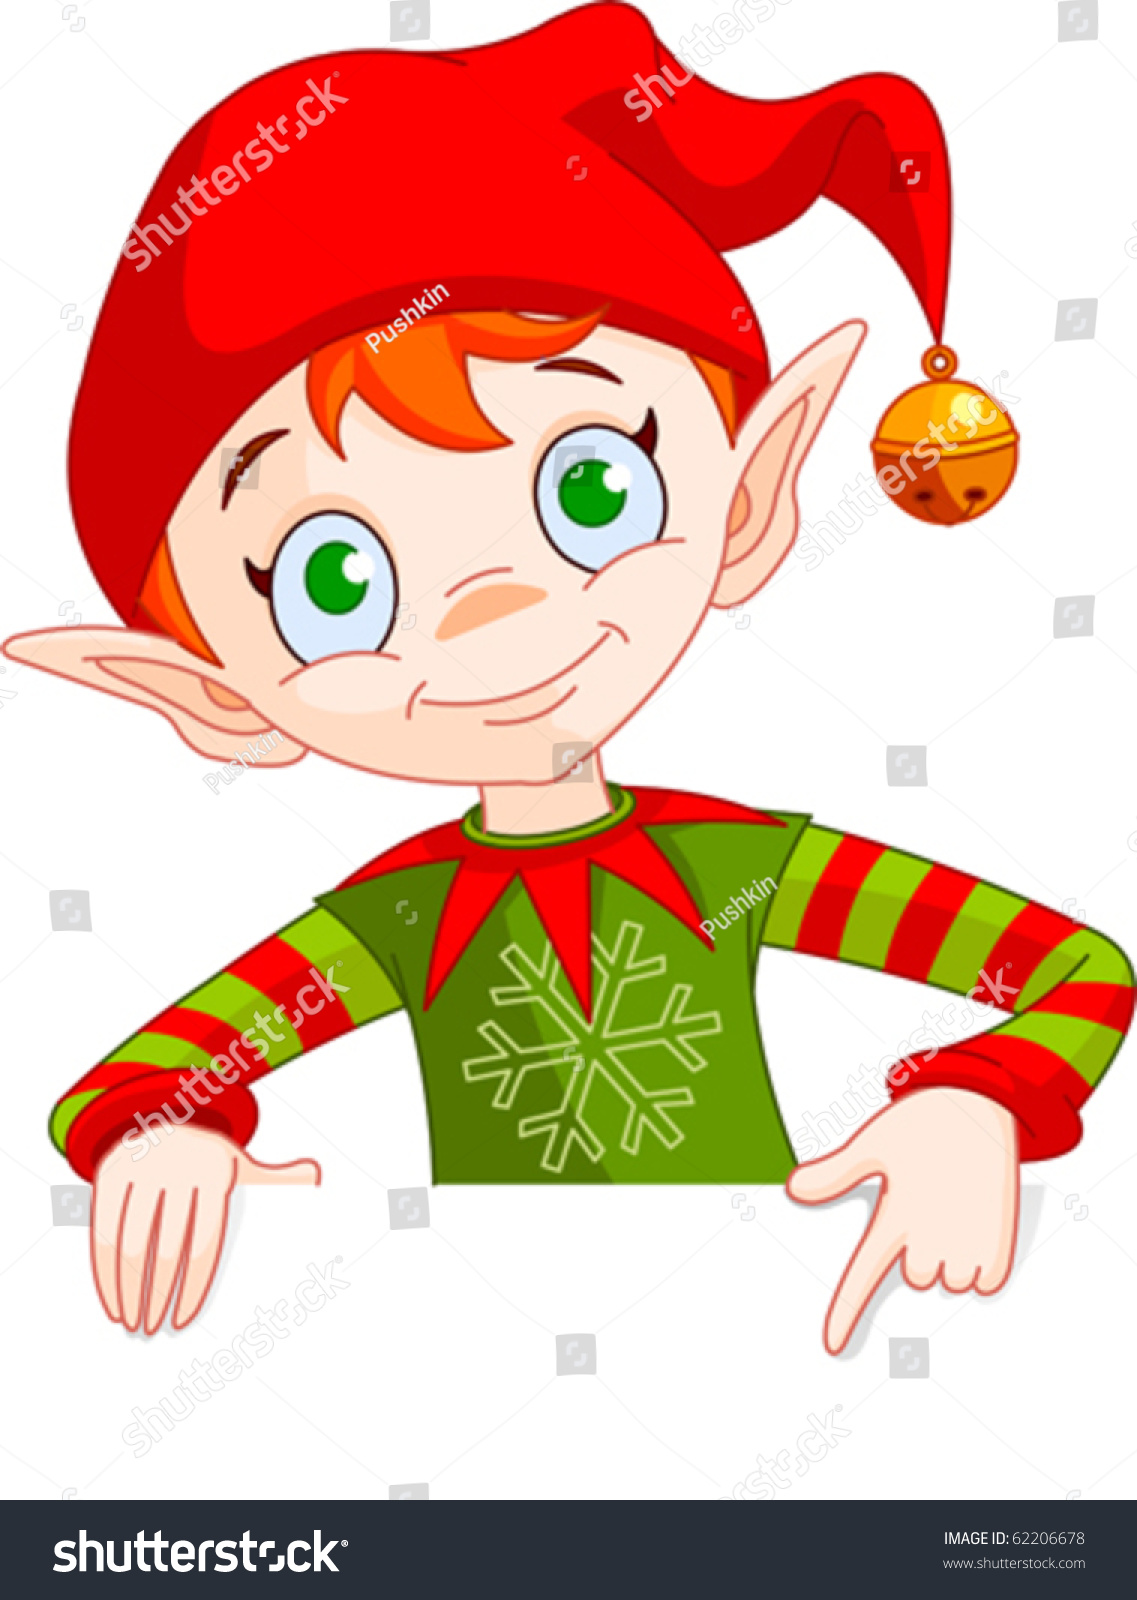 Clipart Illustration Christmas Elf Holding Pointing Stock Vector.